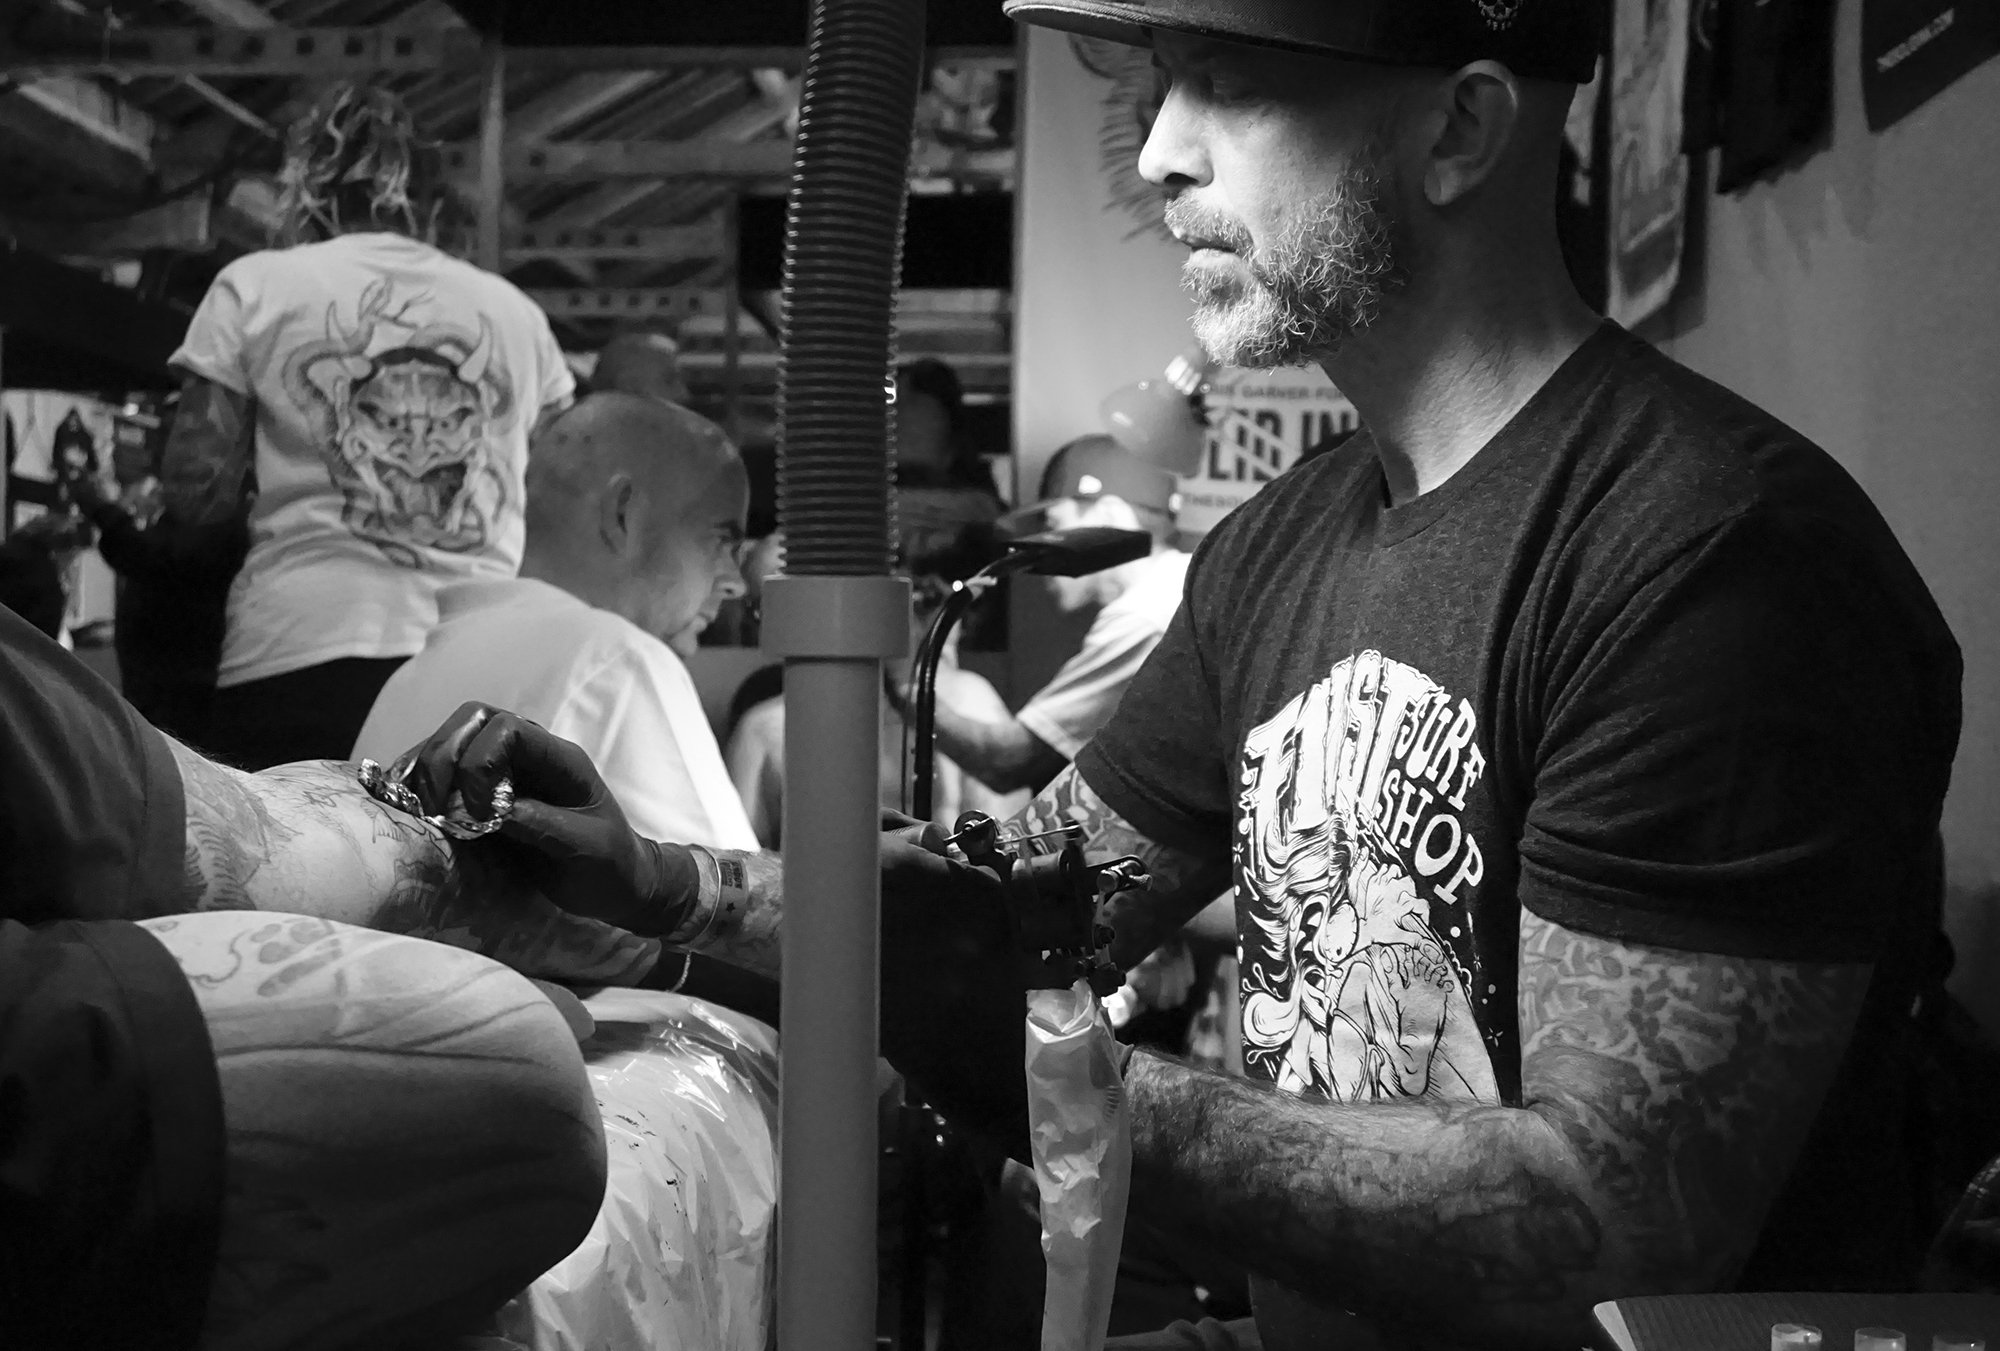 Chris Garver tattooing at the london tattoo convention. Photo © Scene360